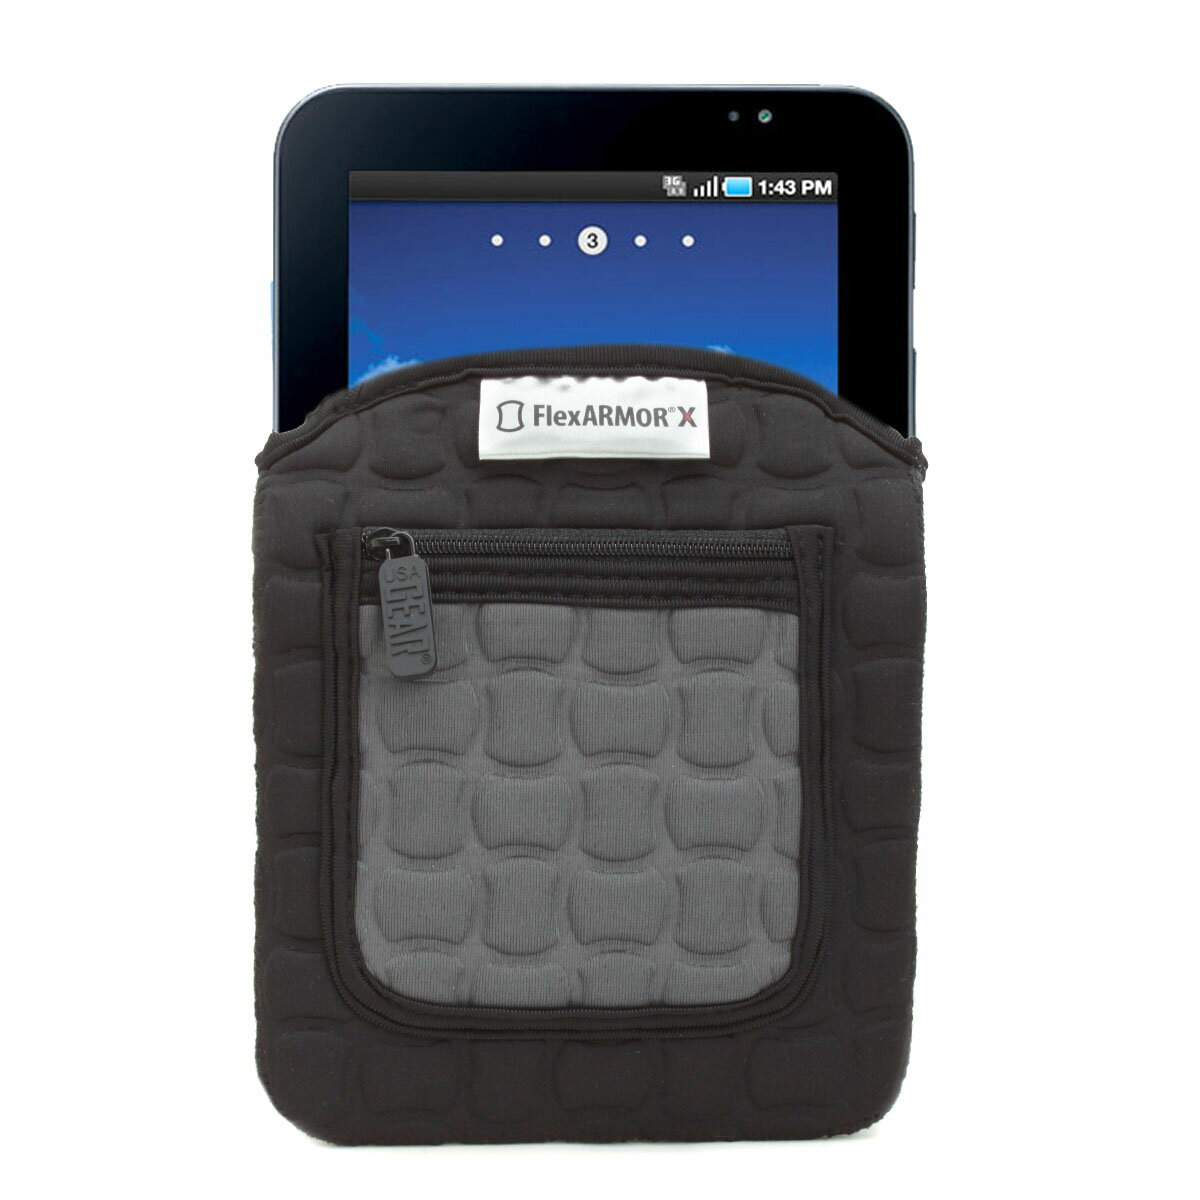 FlexARMOR X Neoprene Tablet Sleeve Case with Carrying Handle , Shock Protection & Accessory Pocket 1